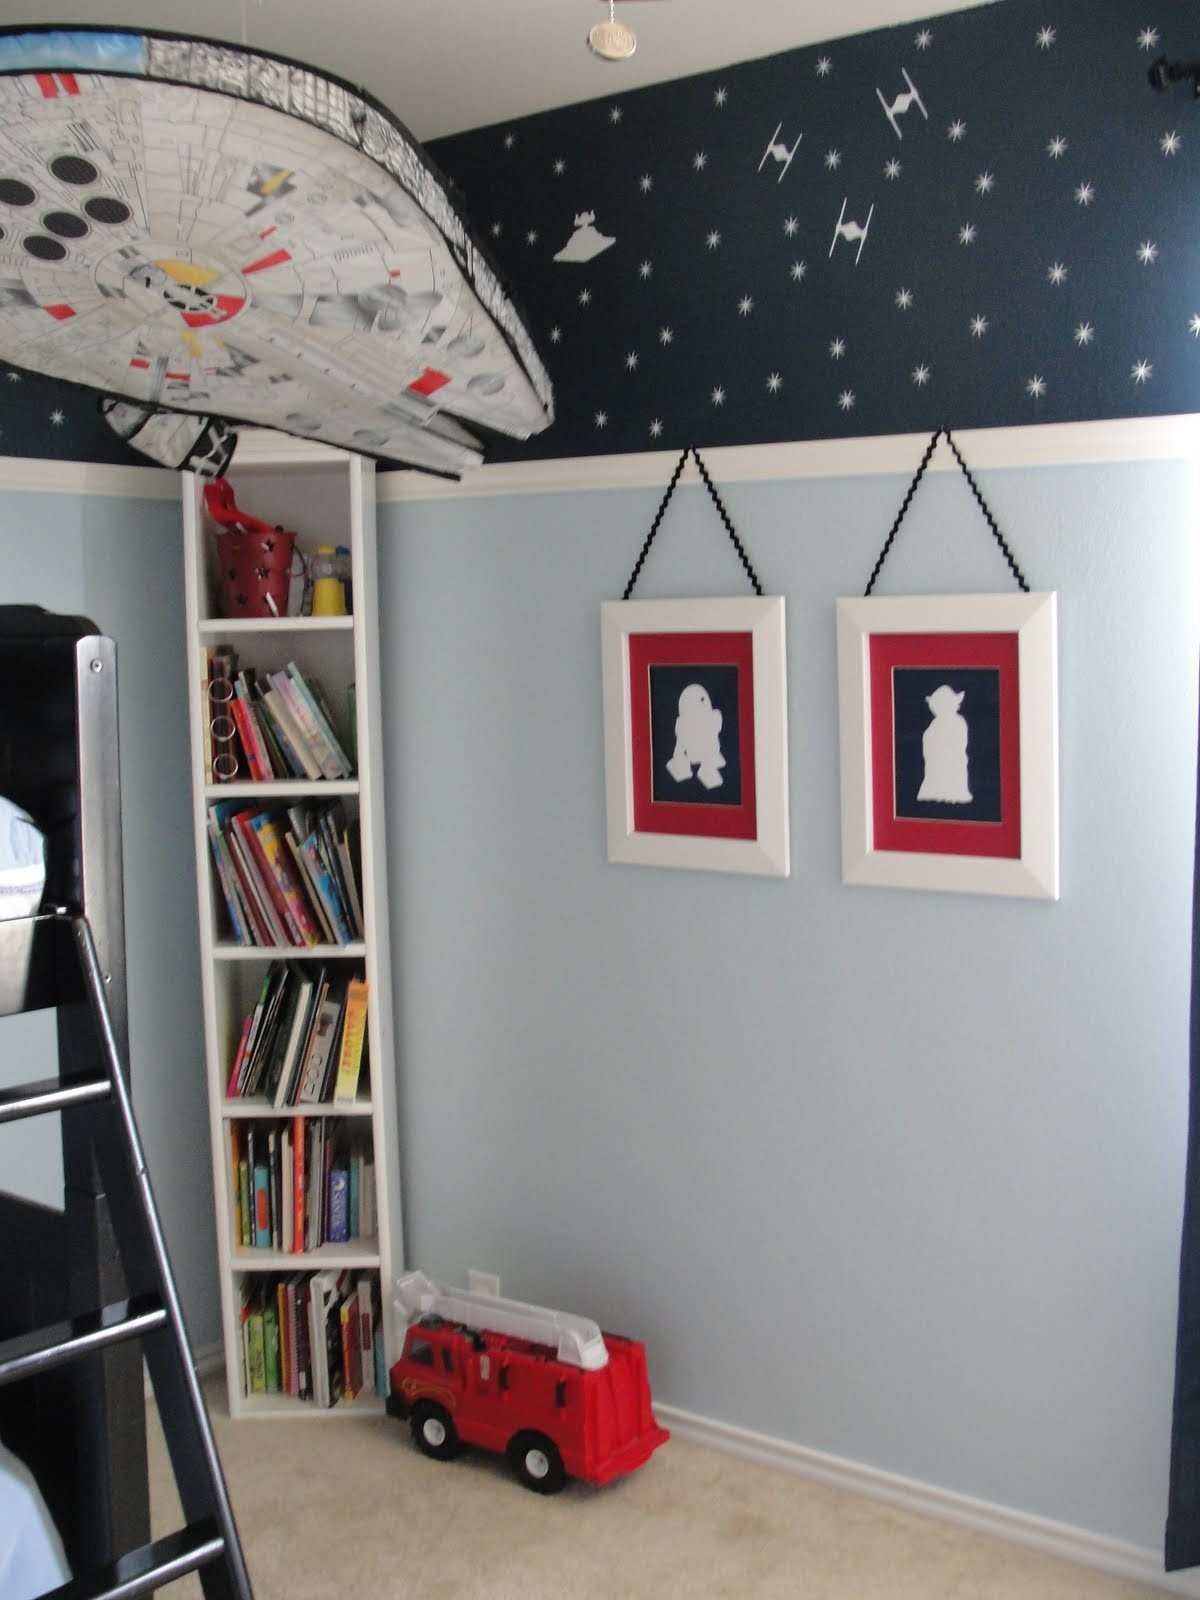 Vinyl prints with red as accent kid room ideas Pinterest